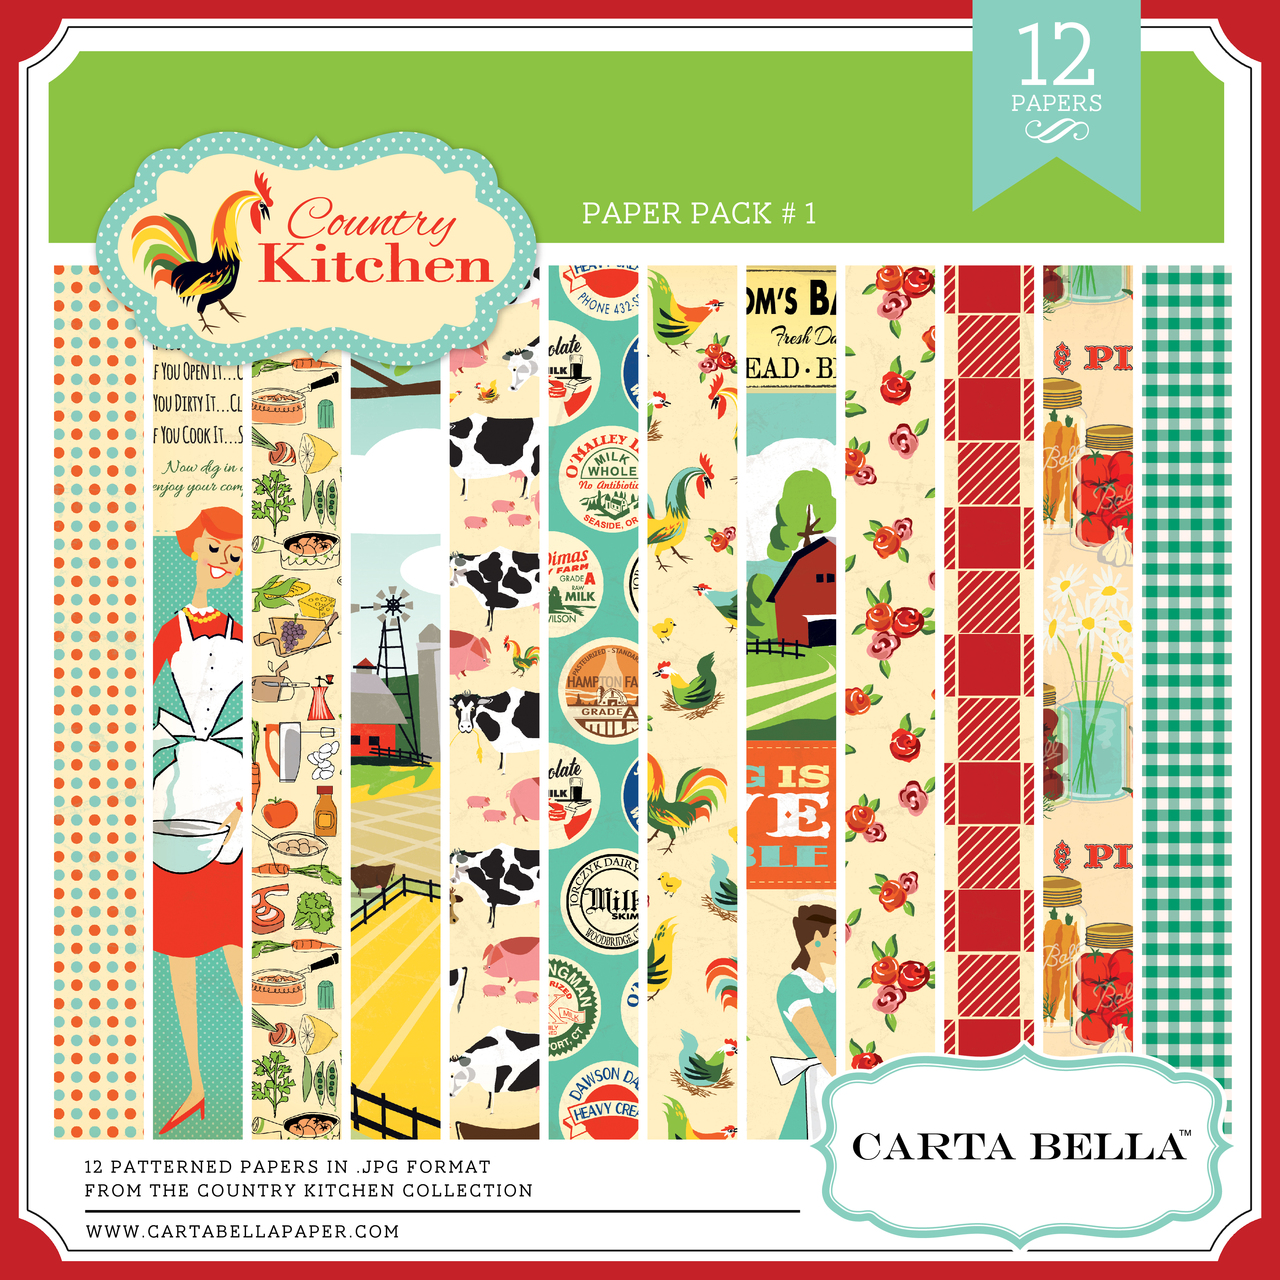 Country Kitchen Paper Pack #1